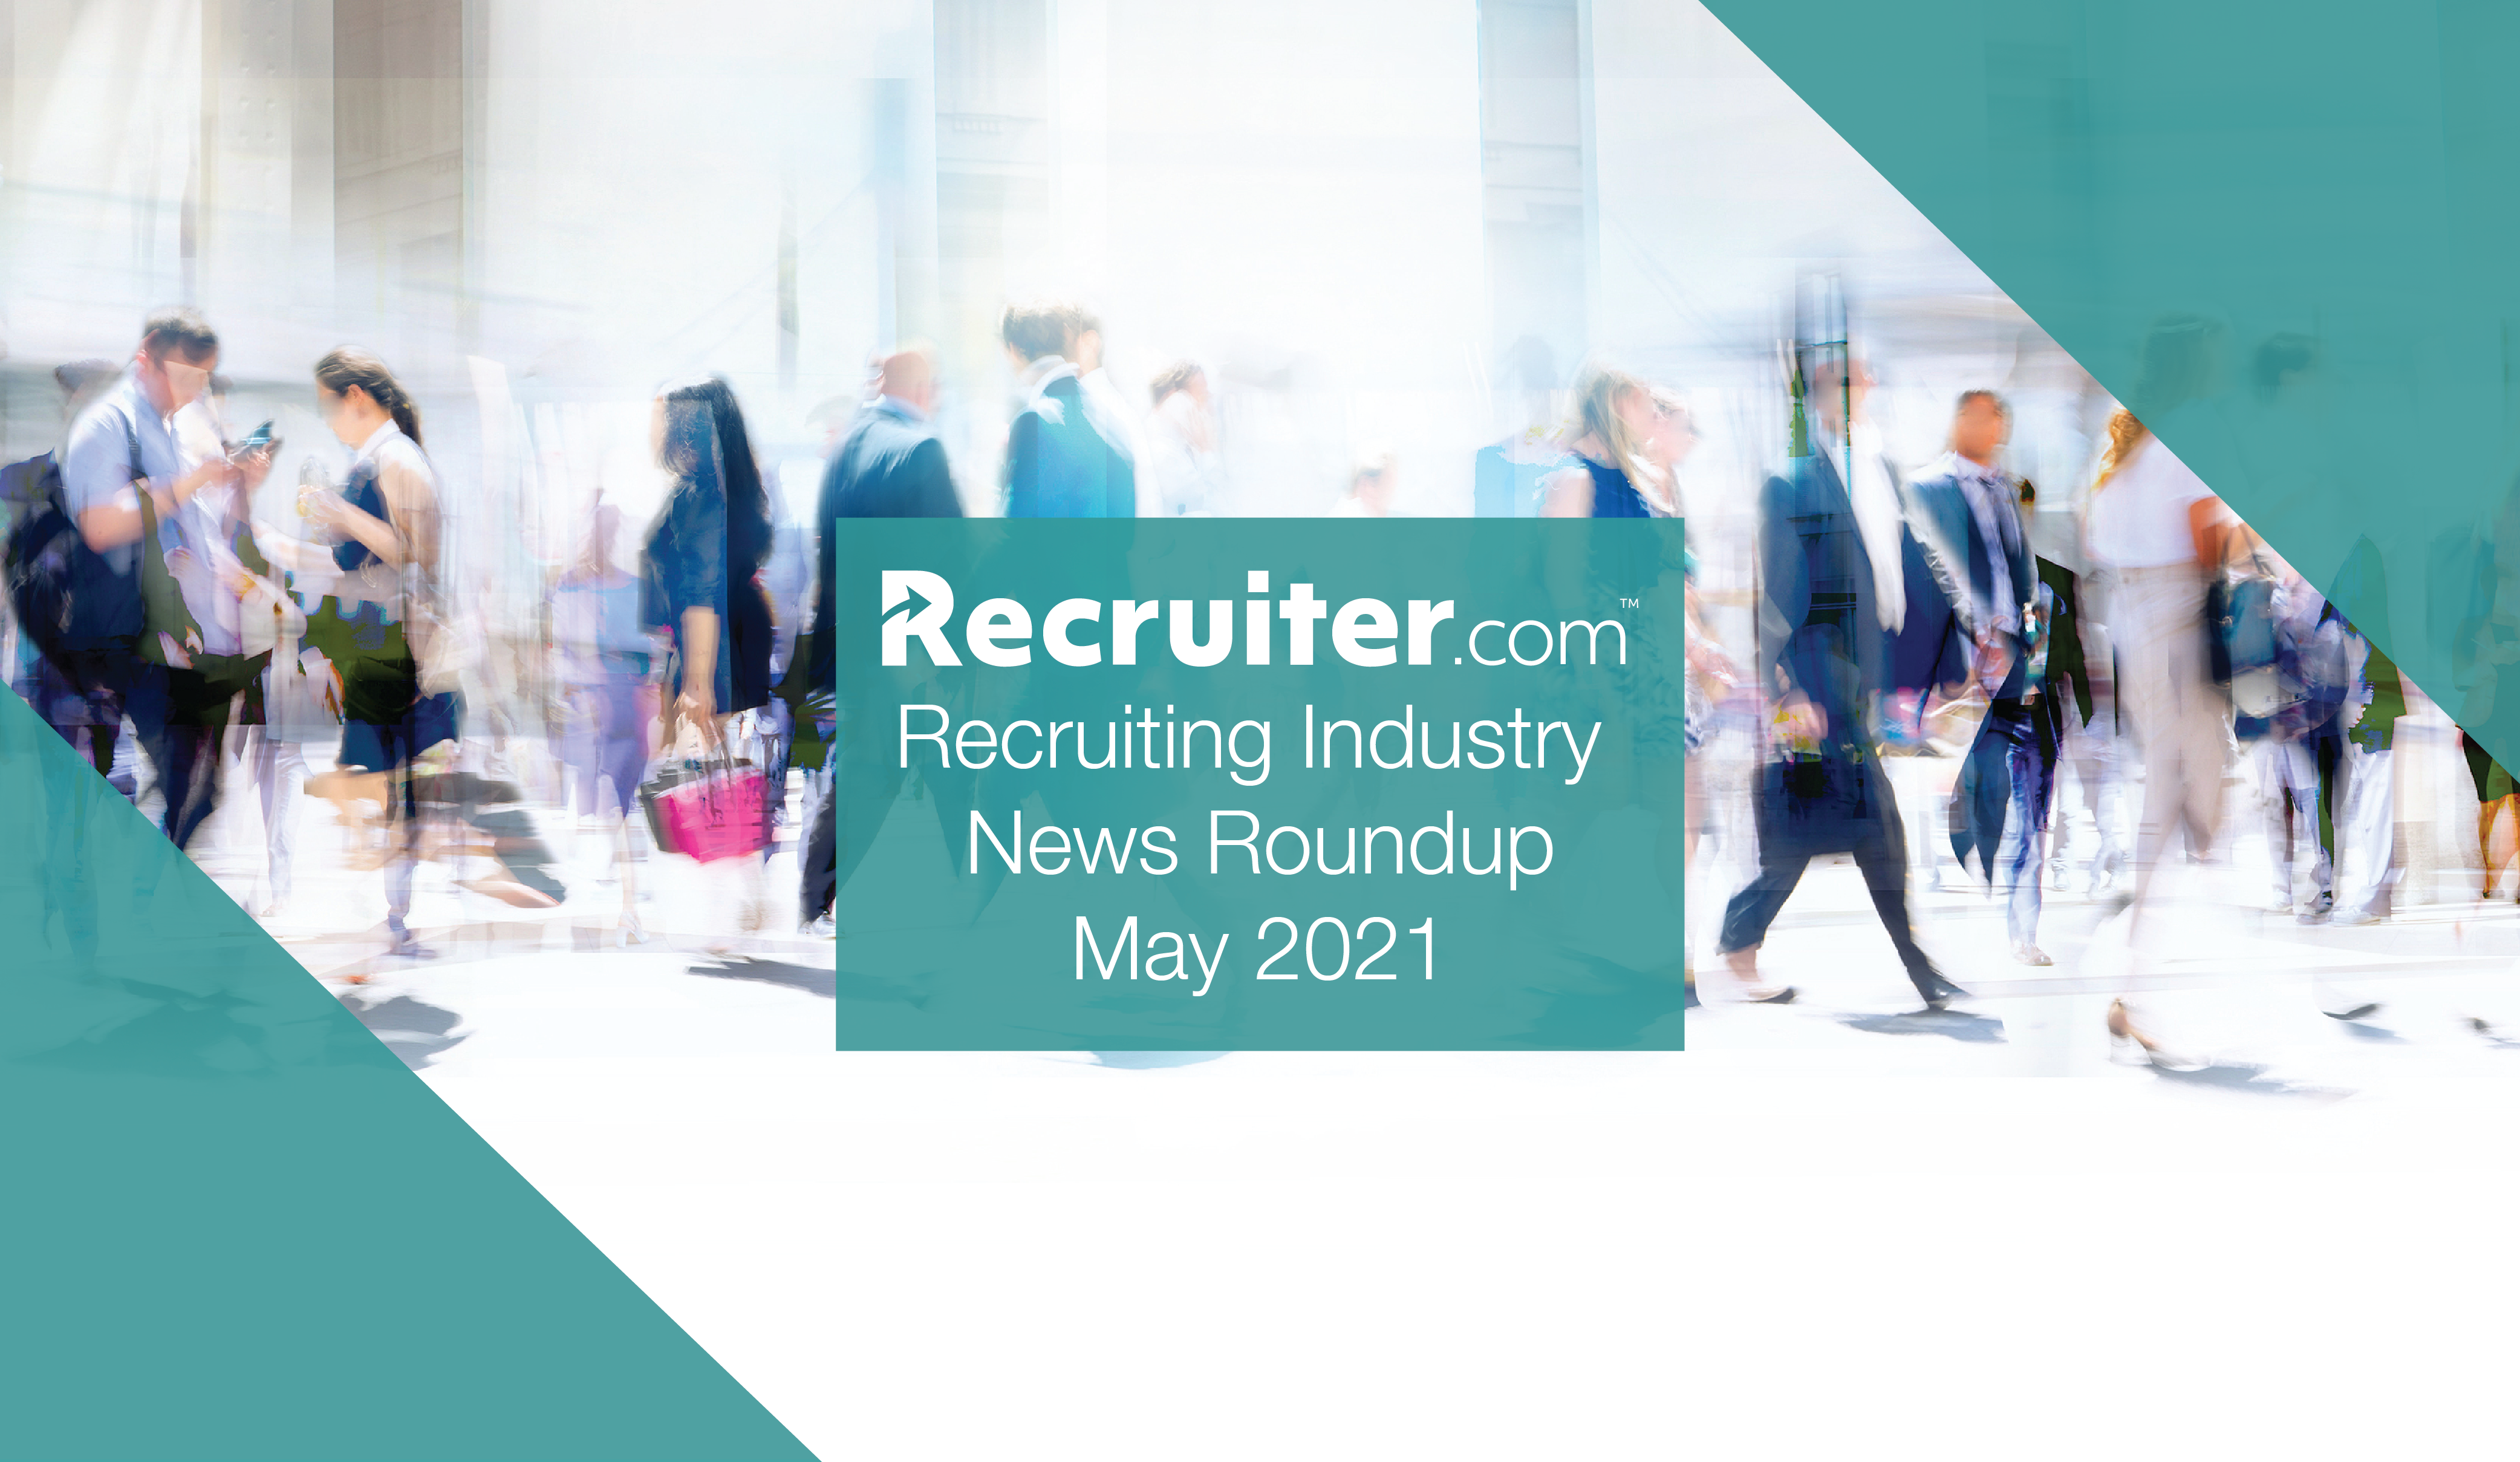 Recruiting Industry News May 2021